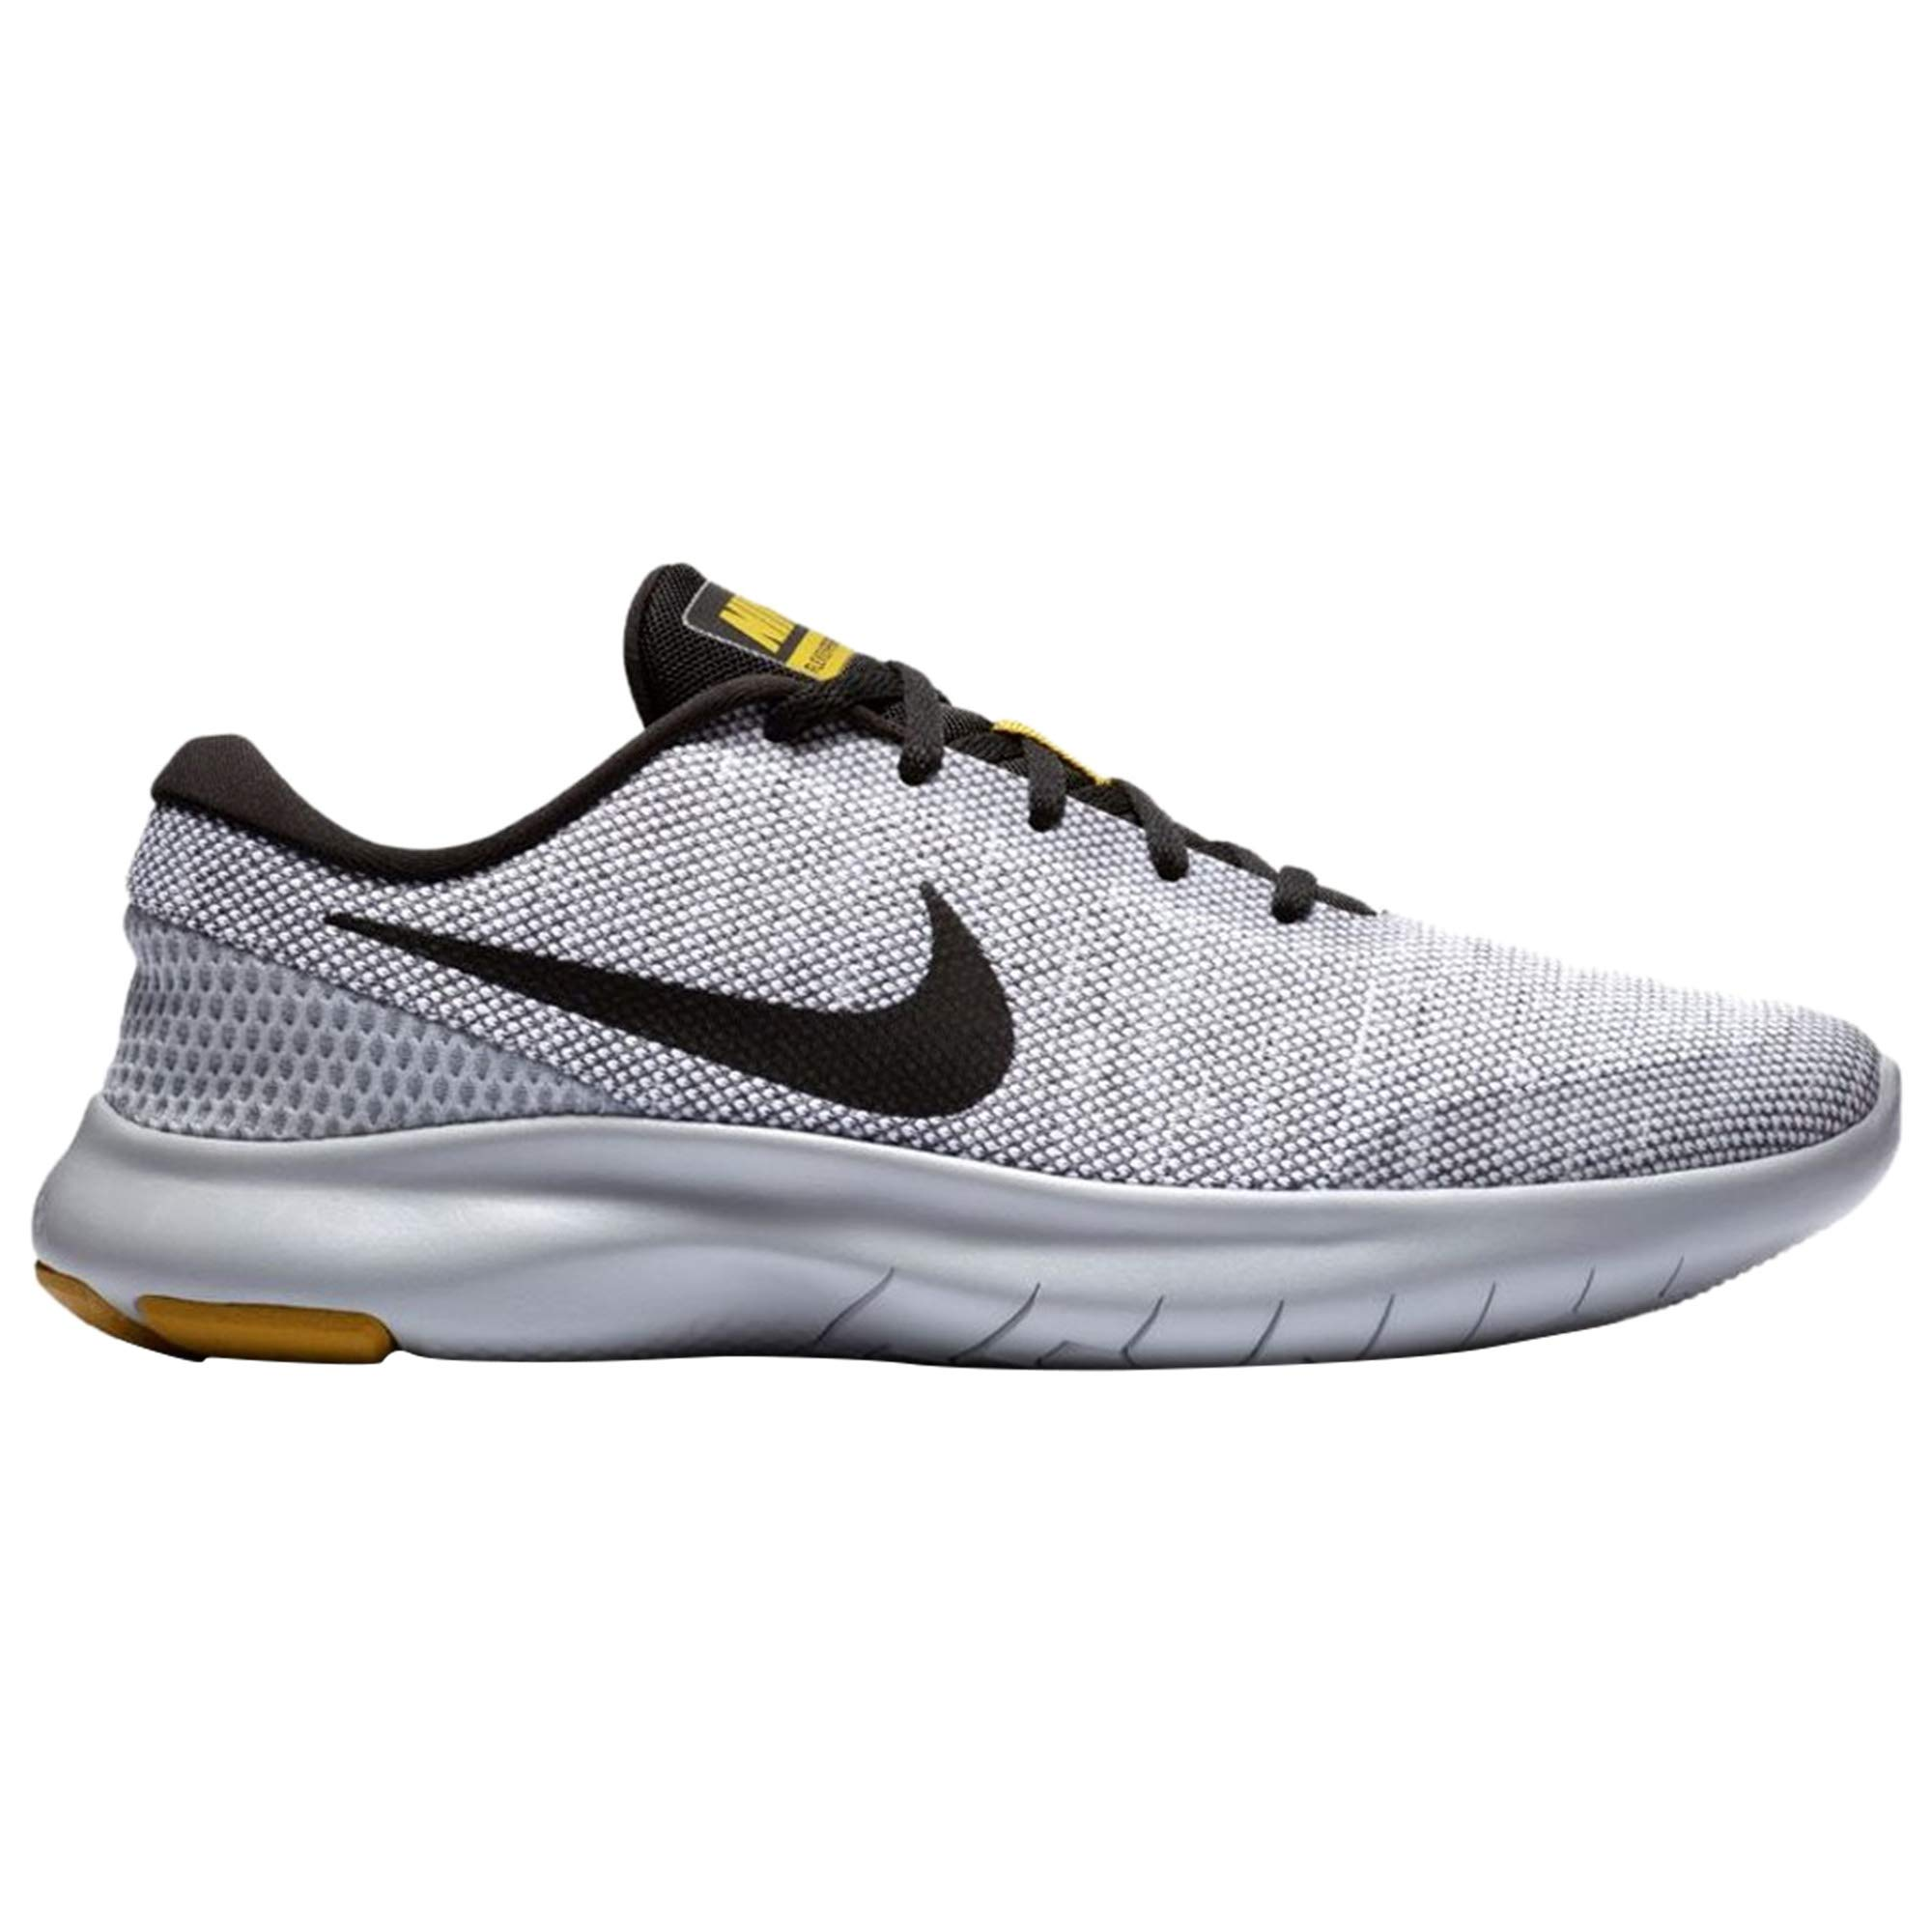 new product 3a361 9b70a Galleon - NIKE Men s Flex Experience RN 7 Running Shoe White Black Wolf Grey  Size 9 M US